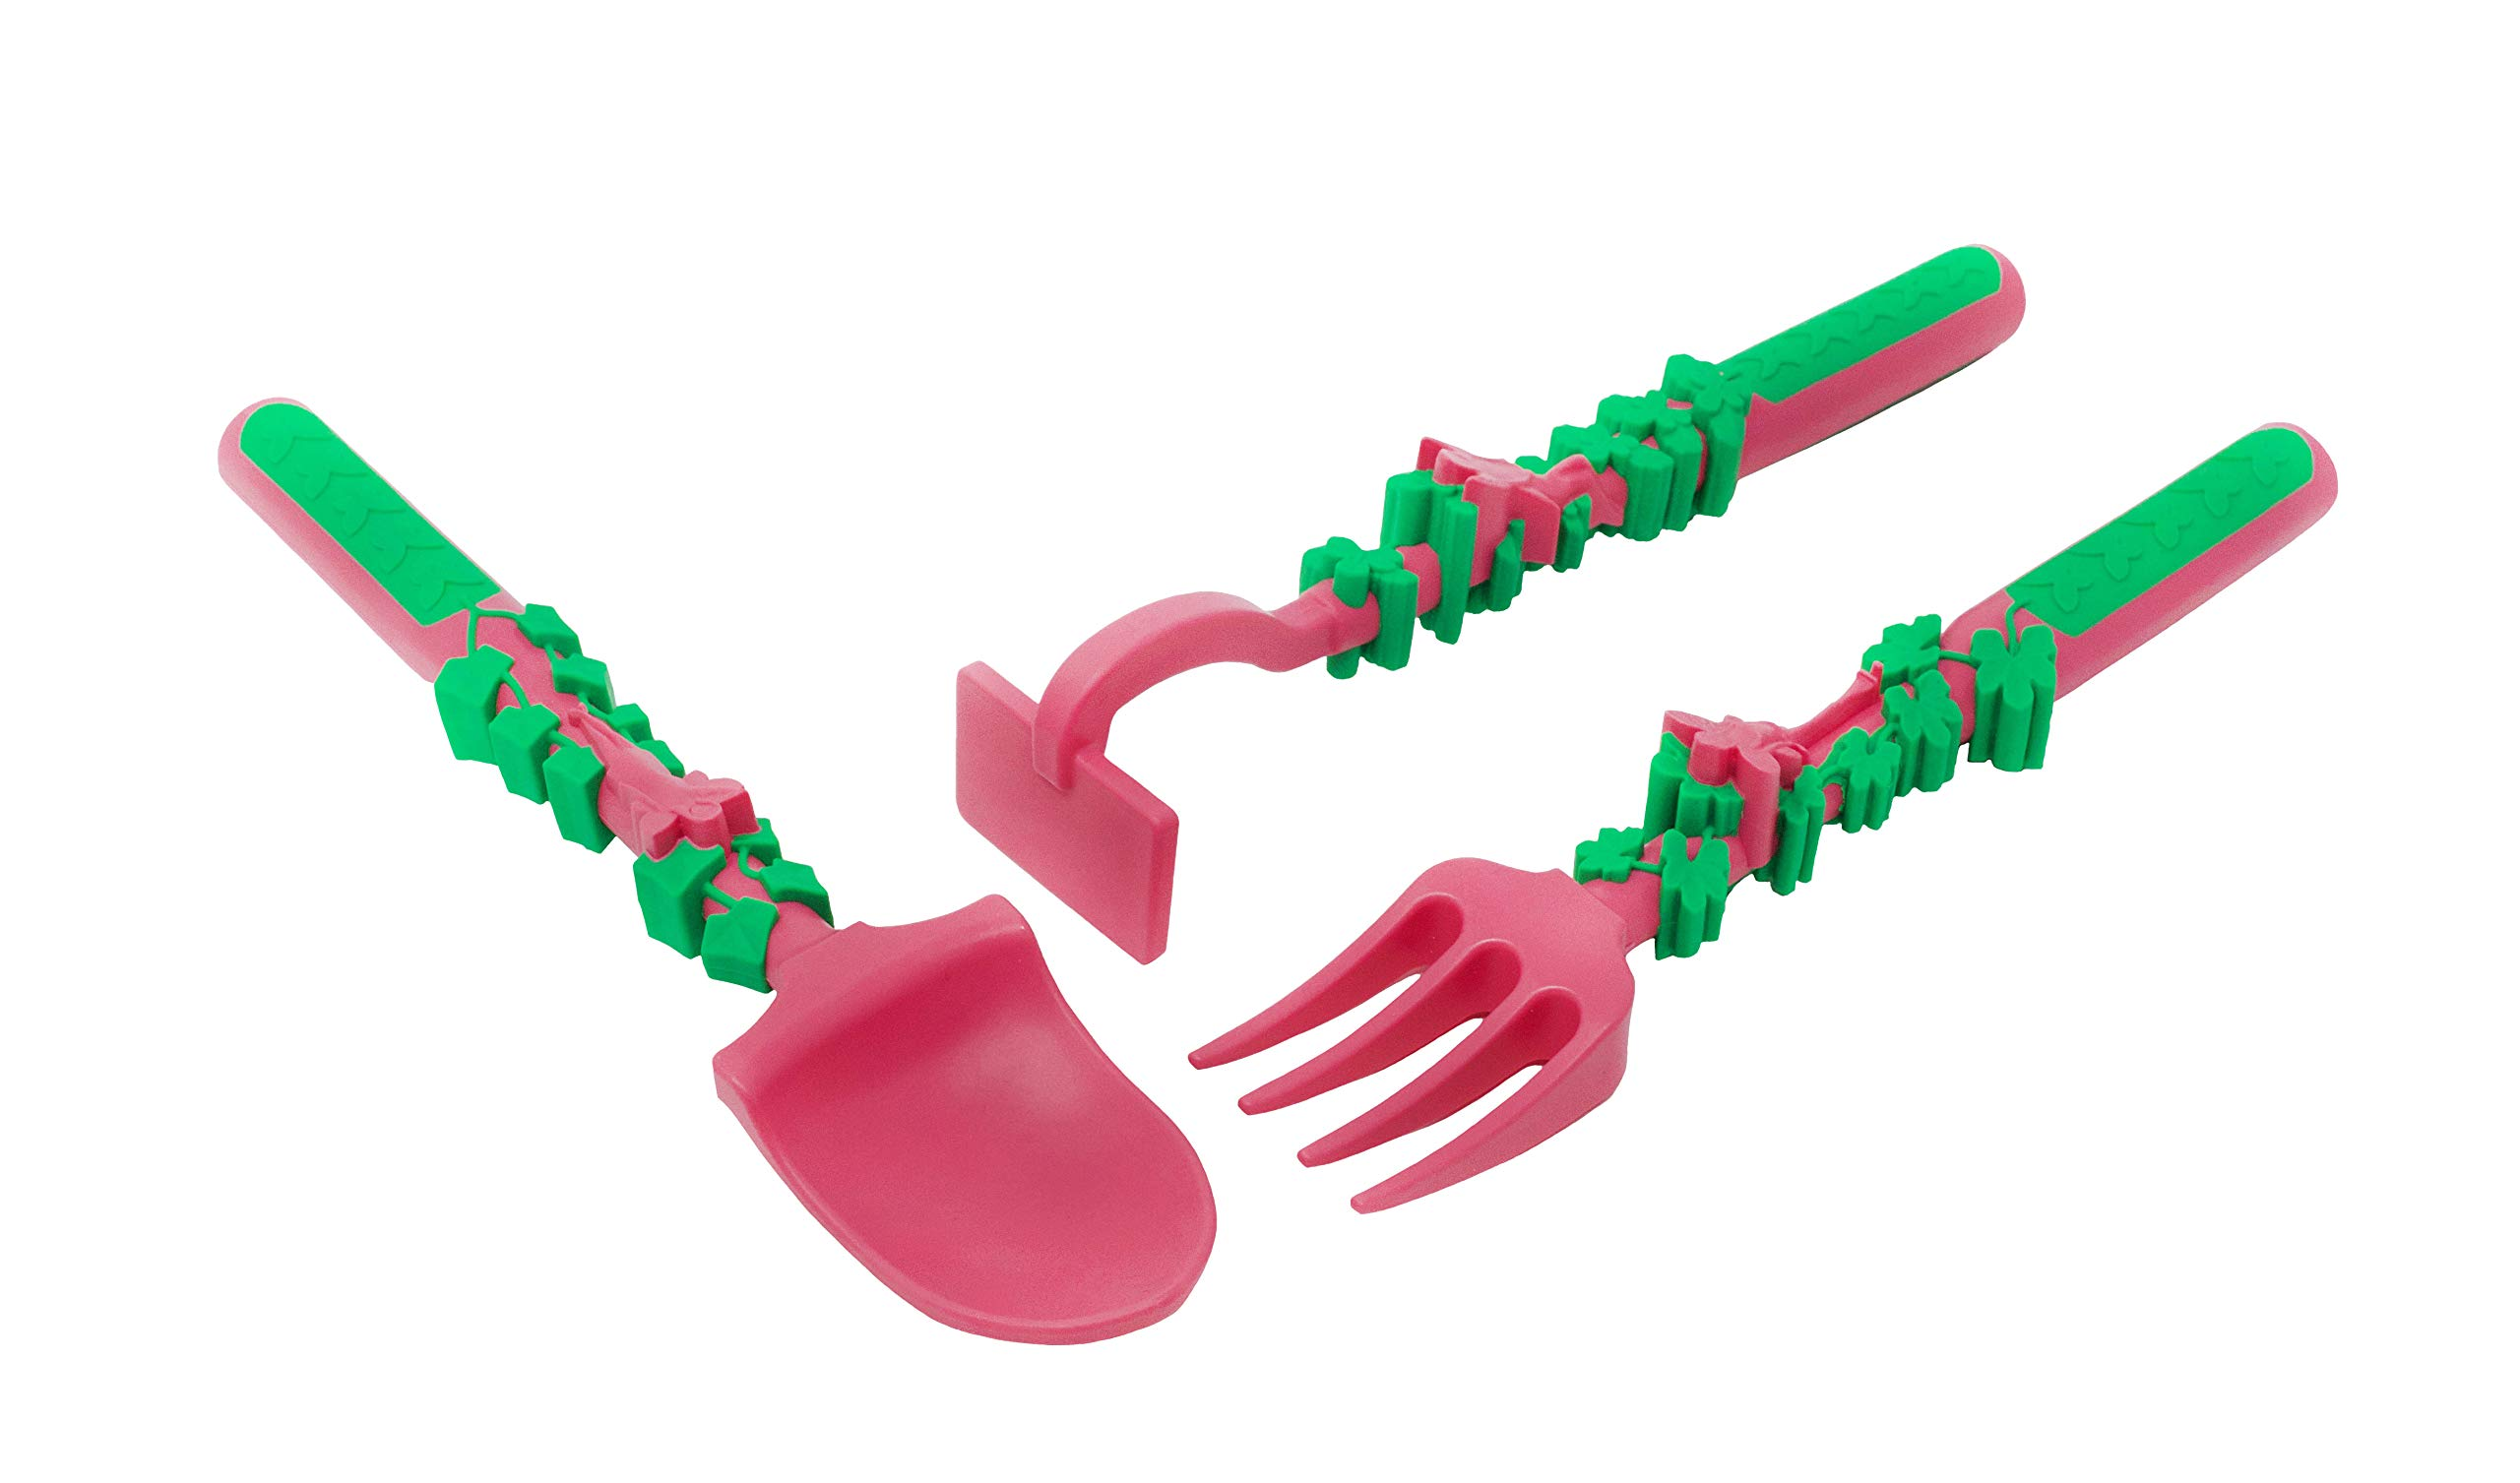 Constructive Eating Set of Garden Fairy Utensils for Toddlers, Infants, Babies and Kids - Flatware Toys are Made in the USA with FDA Approved Materials for Safe and Fun Eating